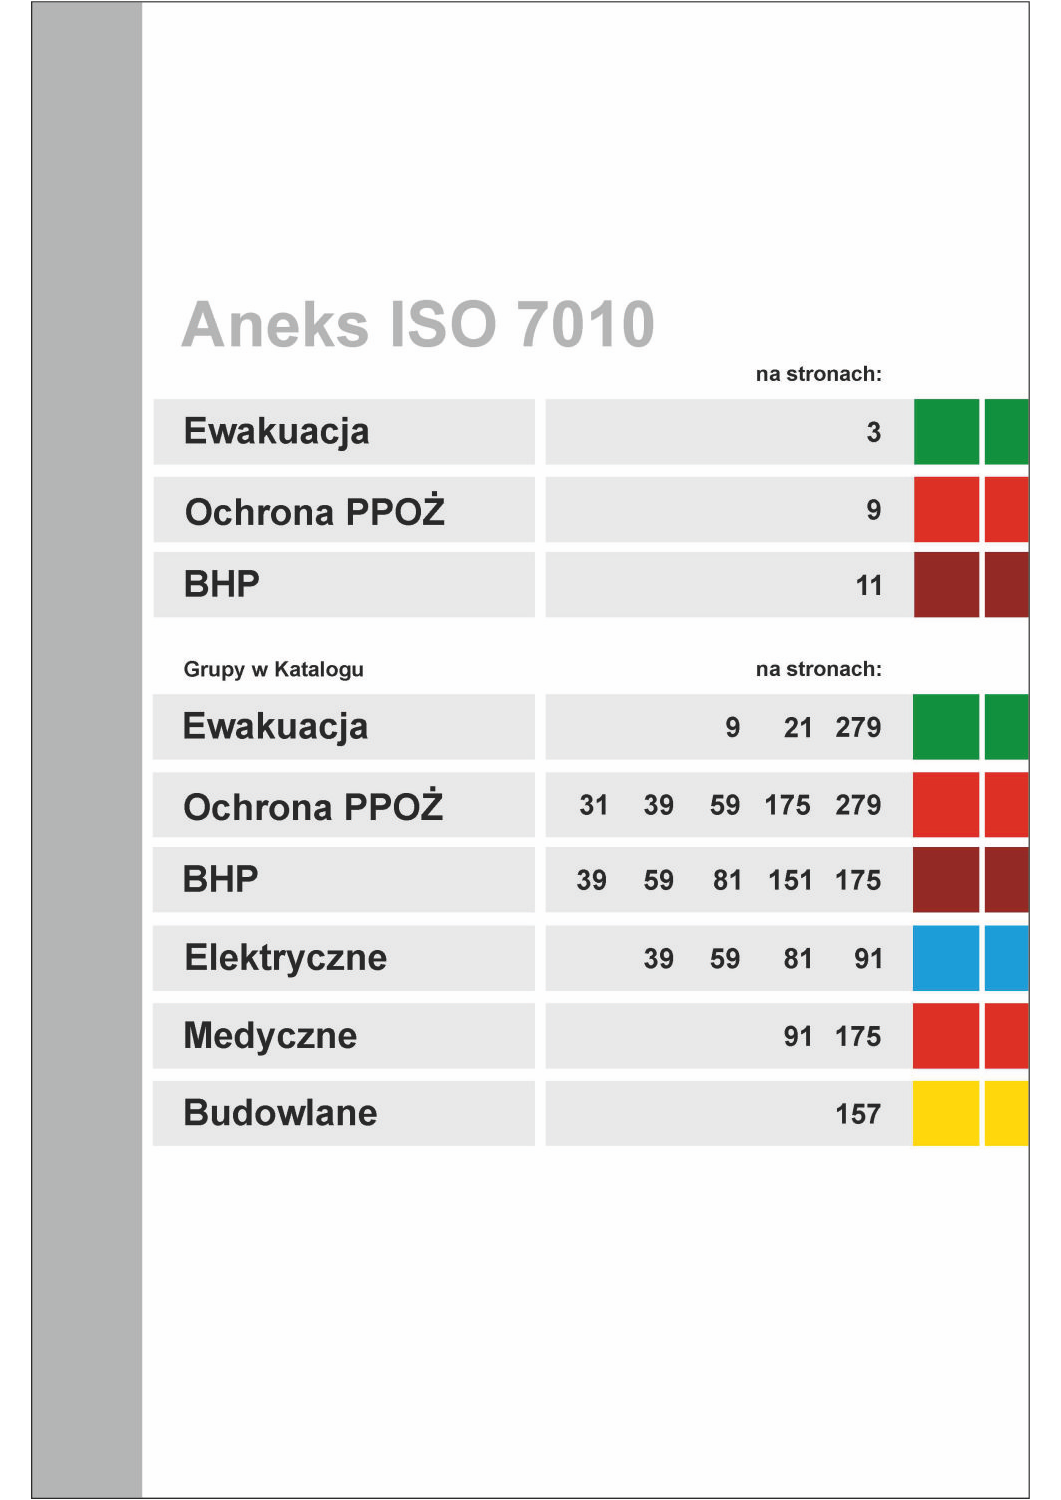 Aneks ISO 7010